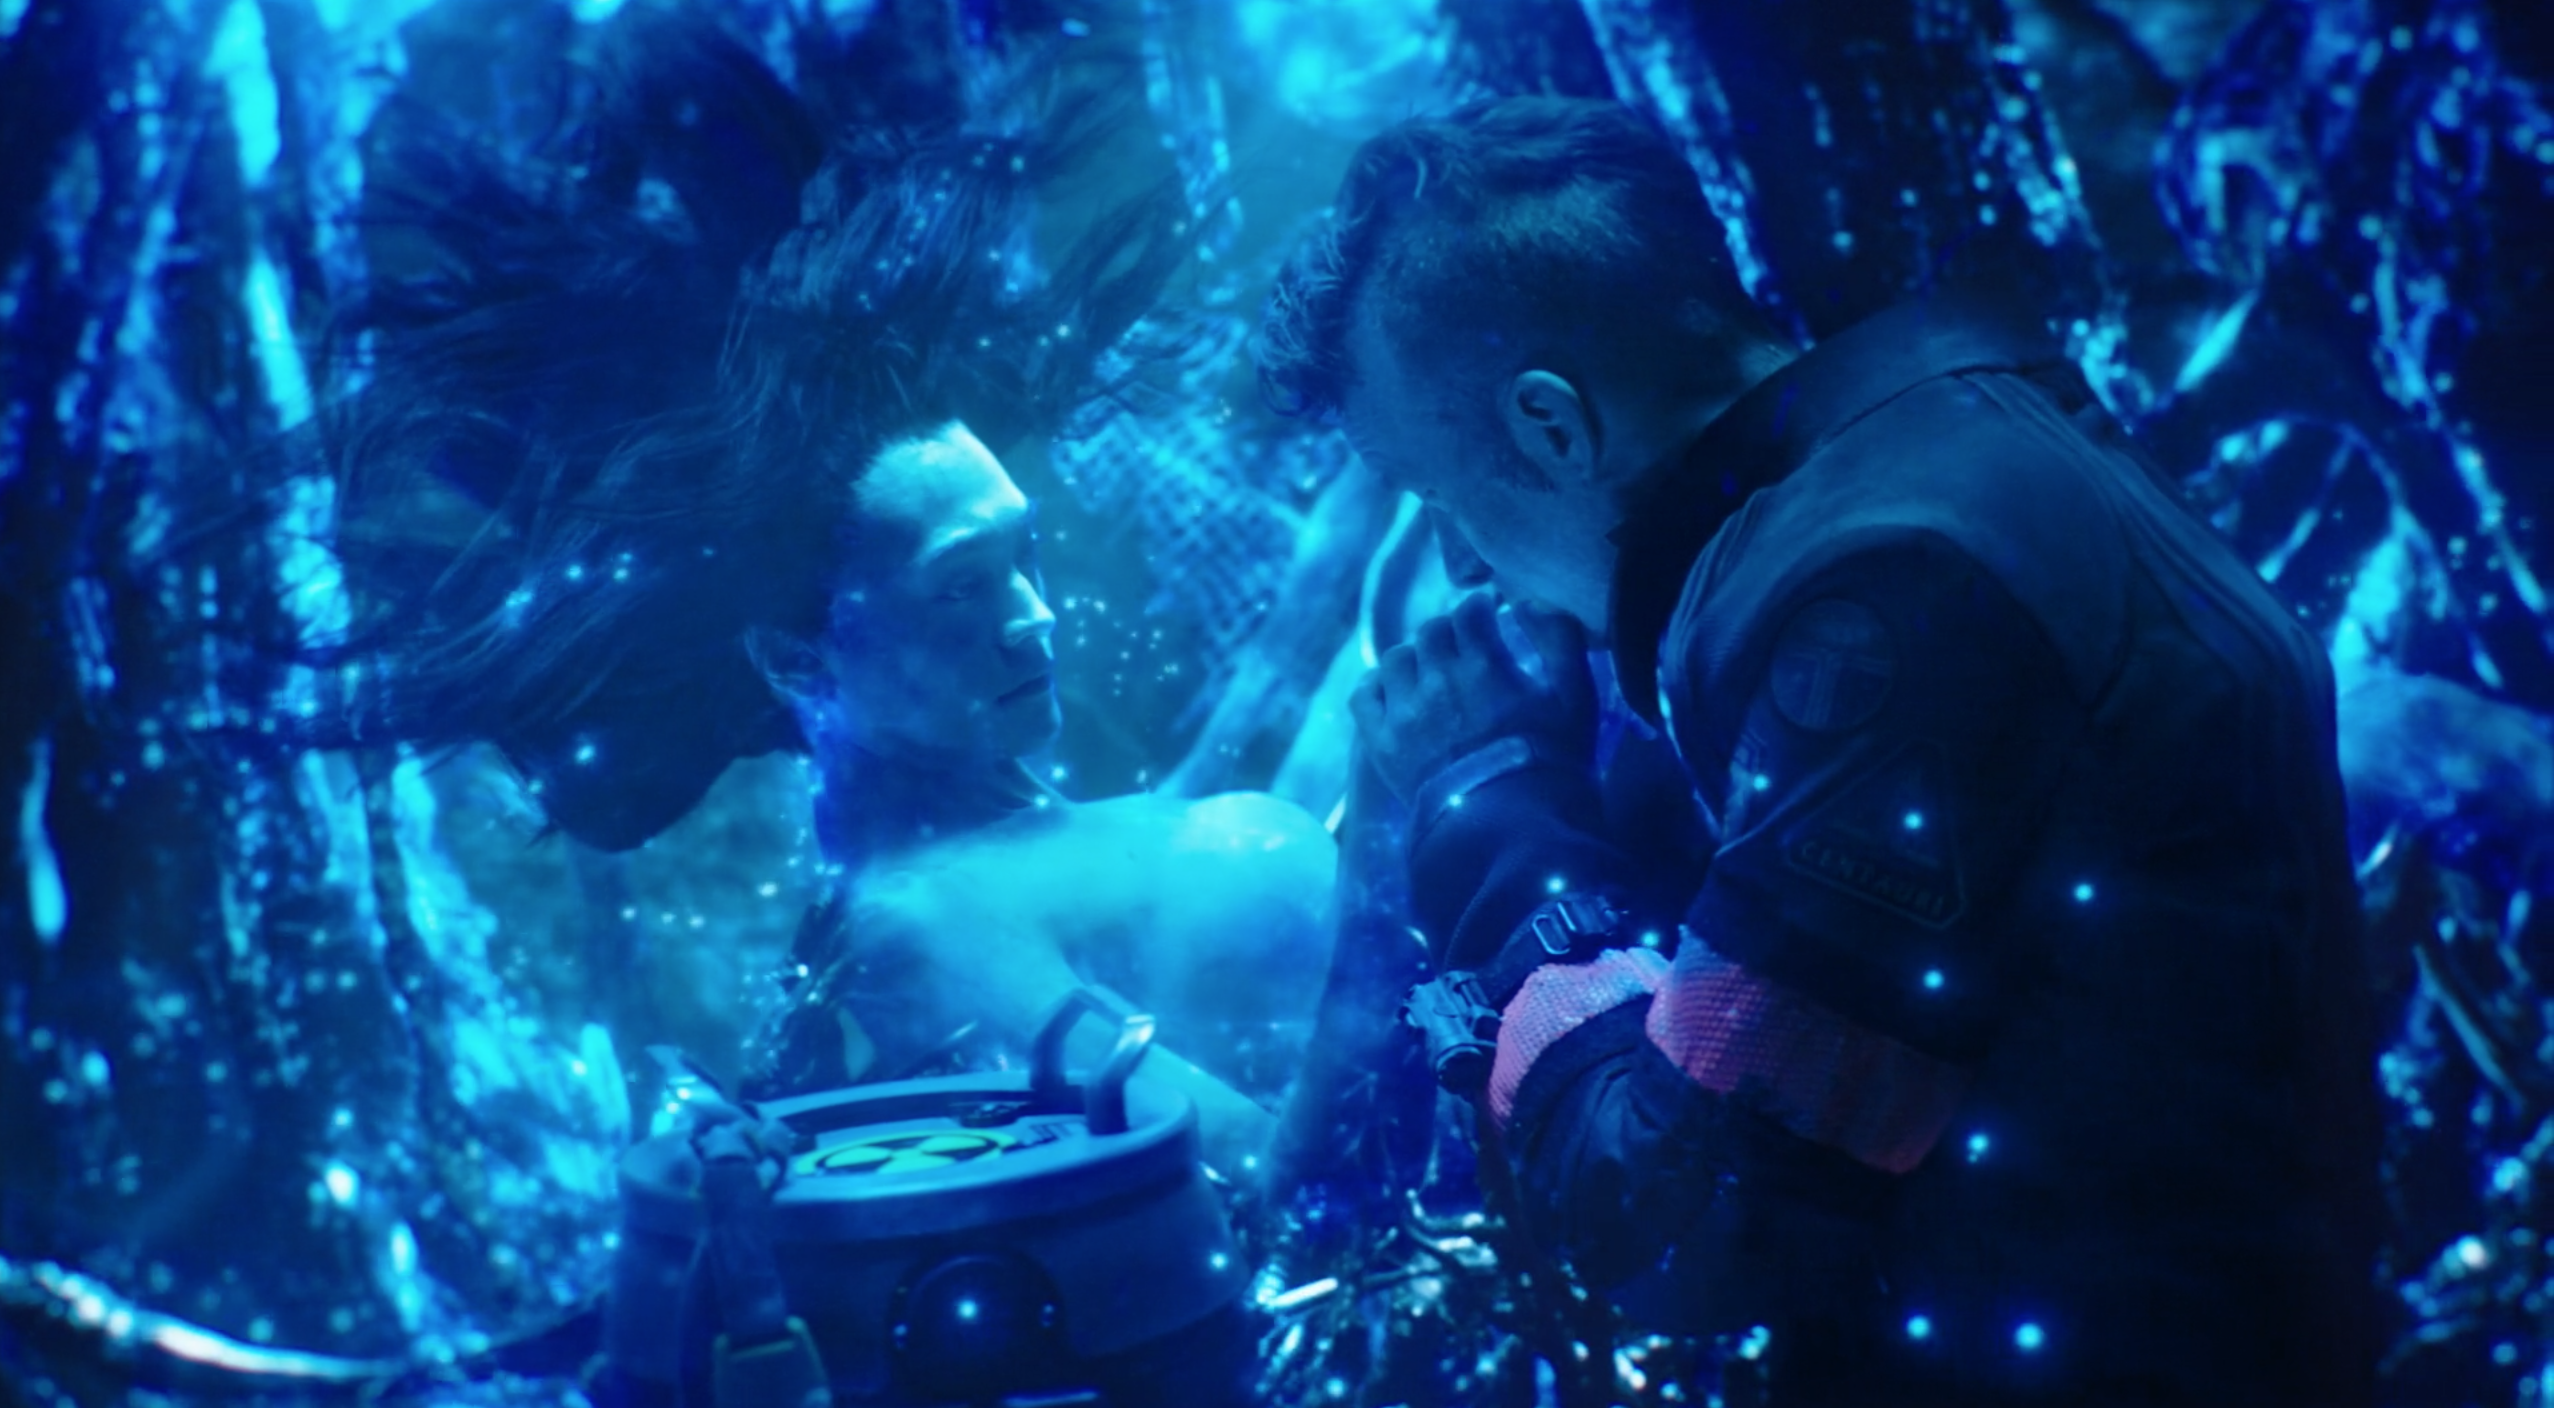 28022017_the_expanse_post_3